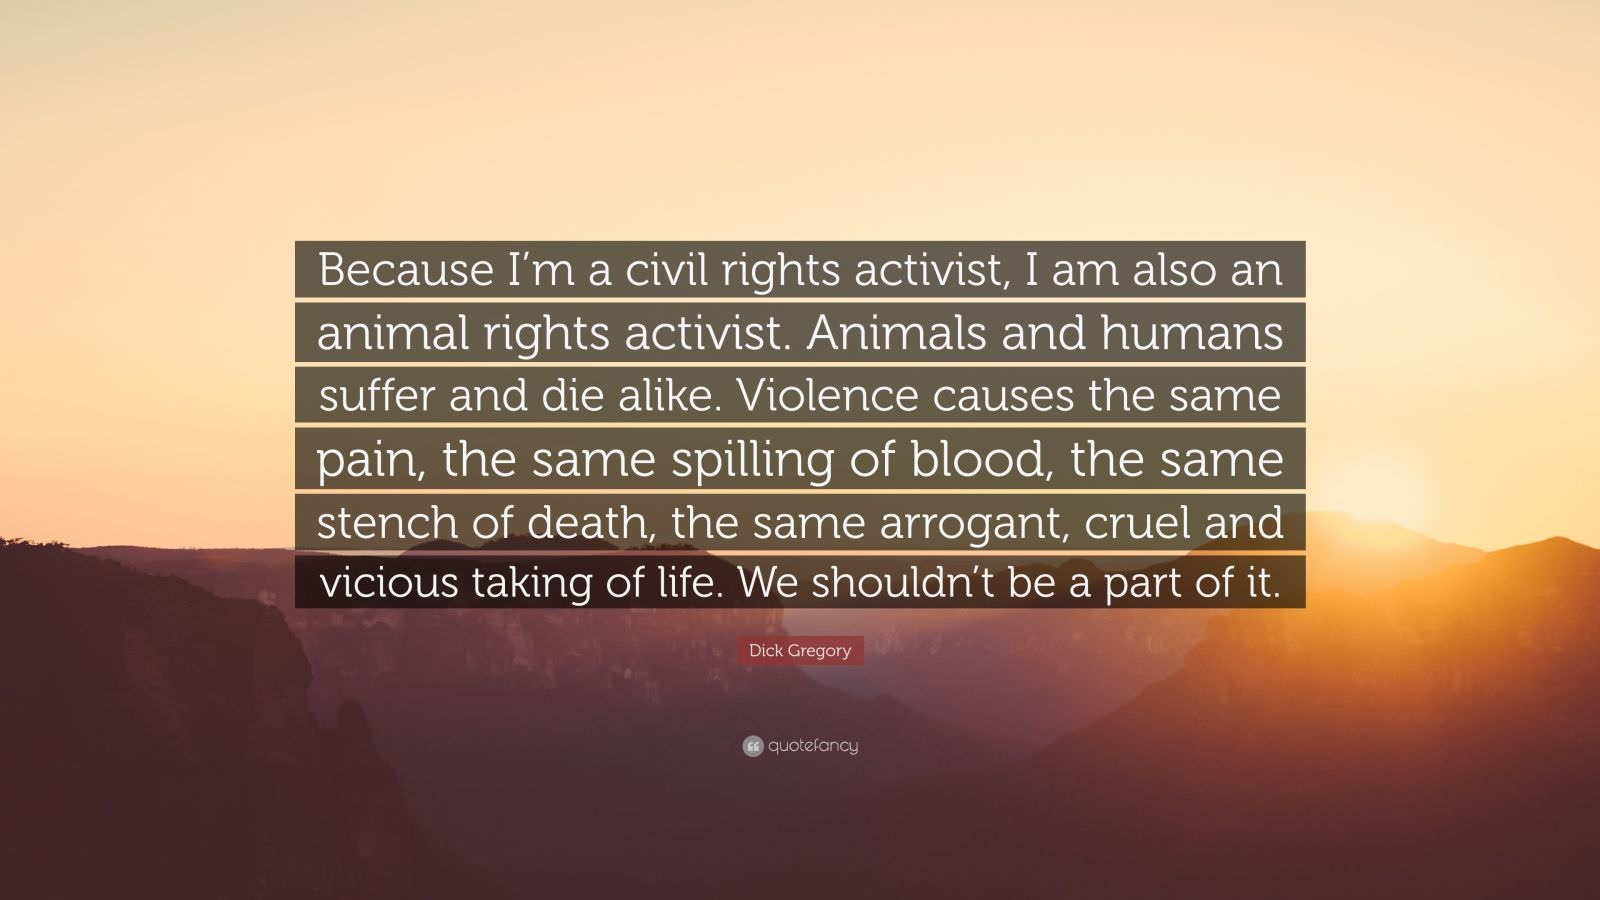 """Because I am a civil rights activist, I am also an animal rights activist."" -Dick Gregory [1600 x 900]"